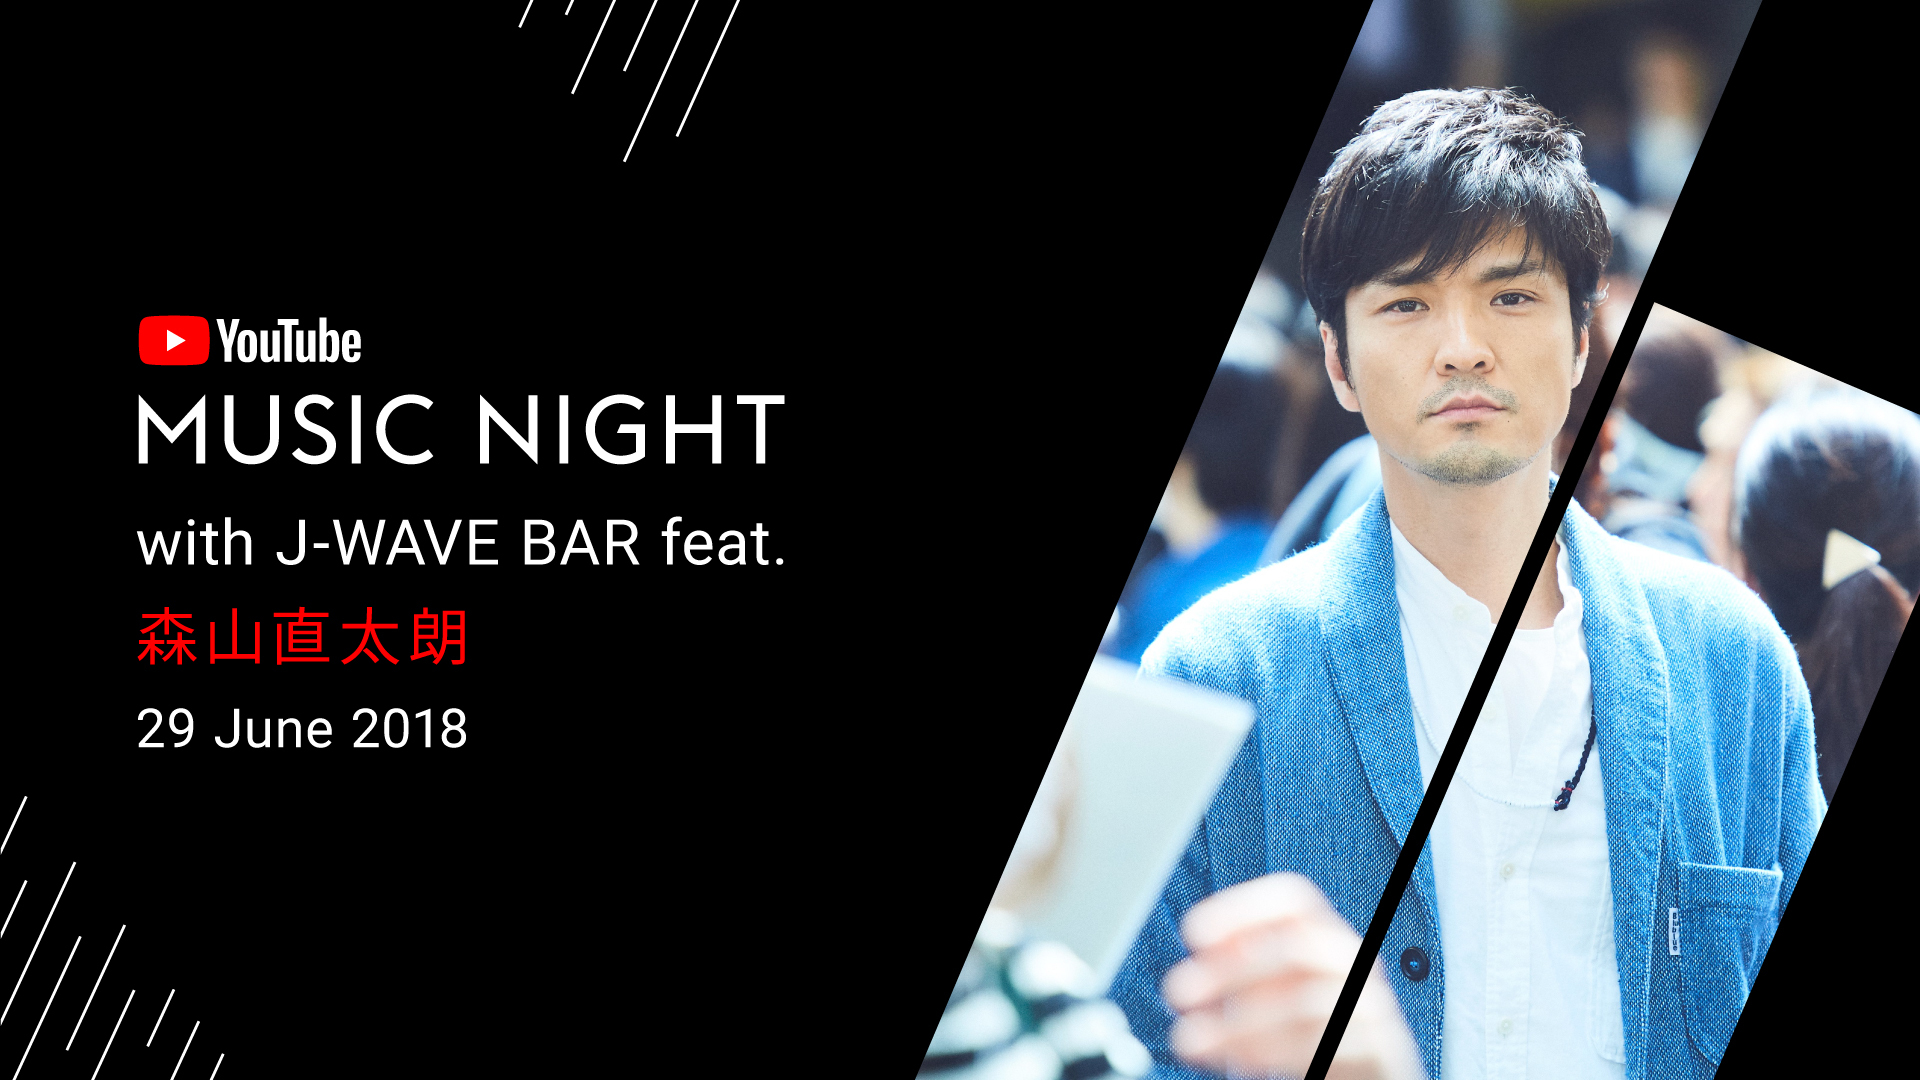 『YouTube Music Night with J-WAVE BAR』